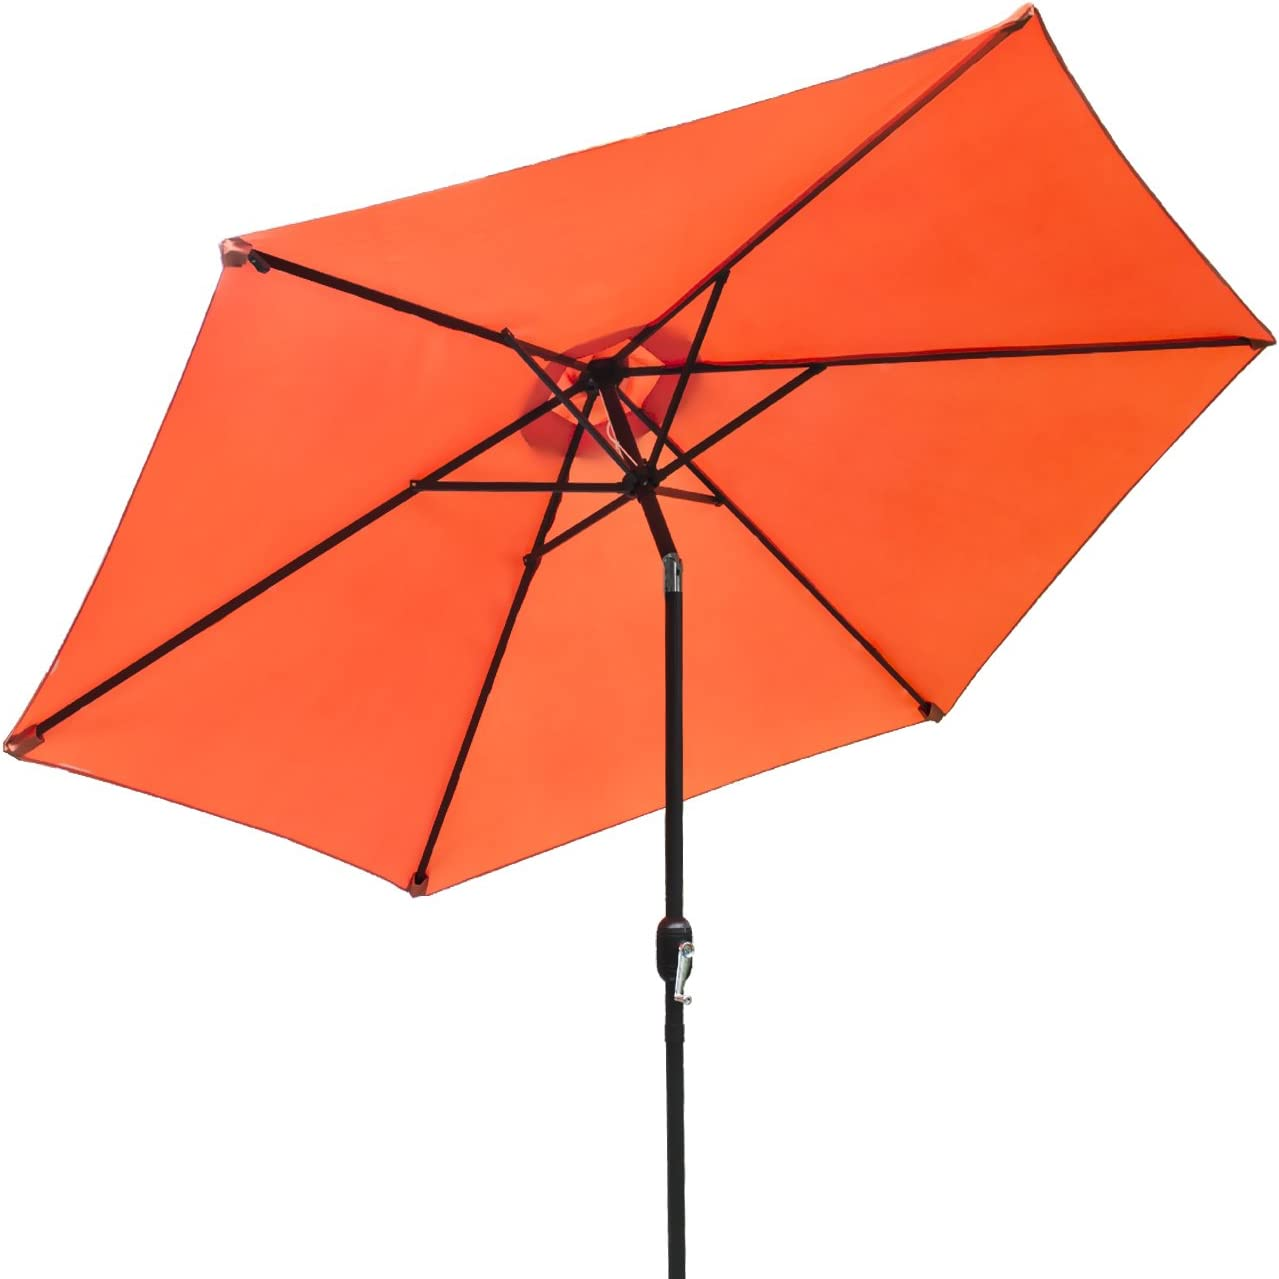 Sorbus Outdoor Umbrella, 10 ft Patio Umbrella with Tilt Adjustment and Crank Lift Handle, Perfect for Backyard, Patio, Deck, Poolside, and More Orange